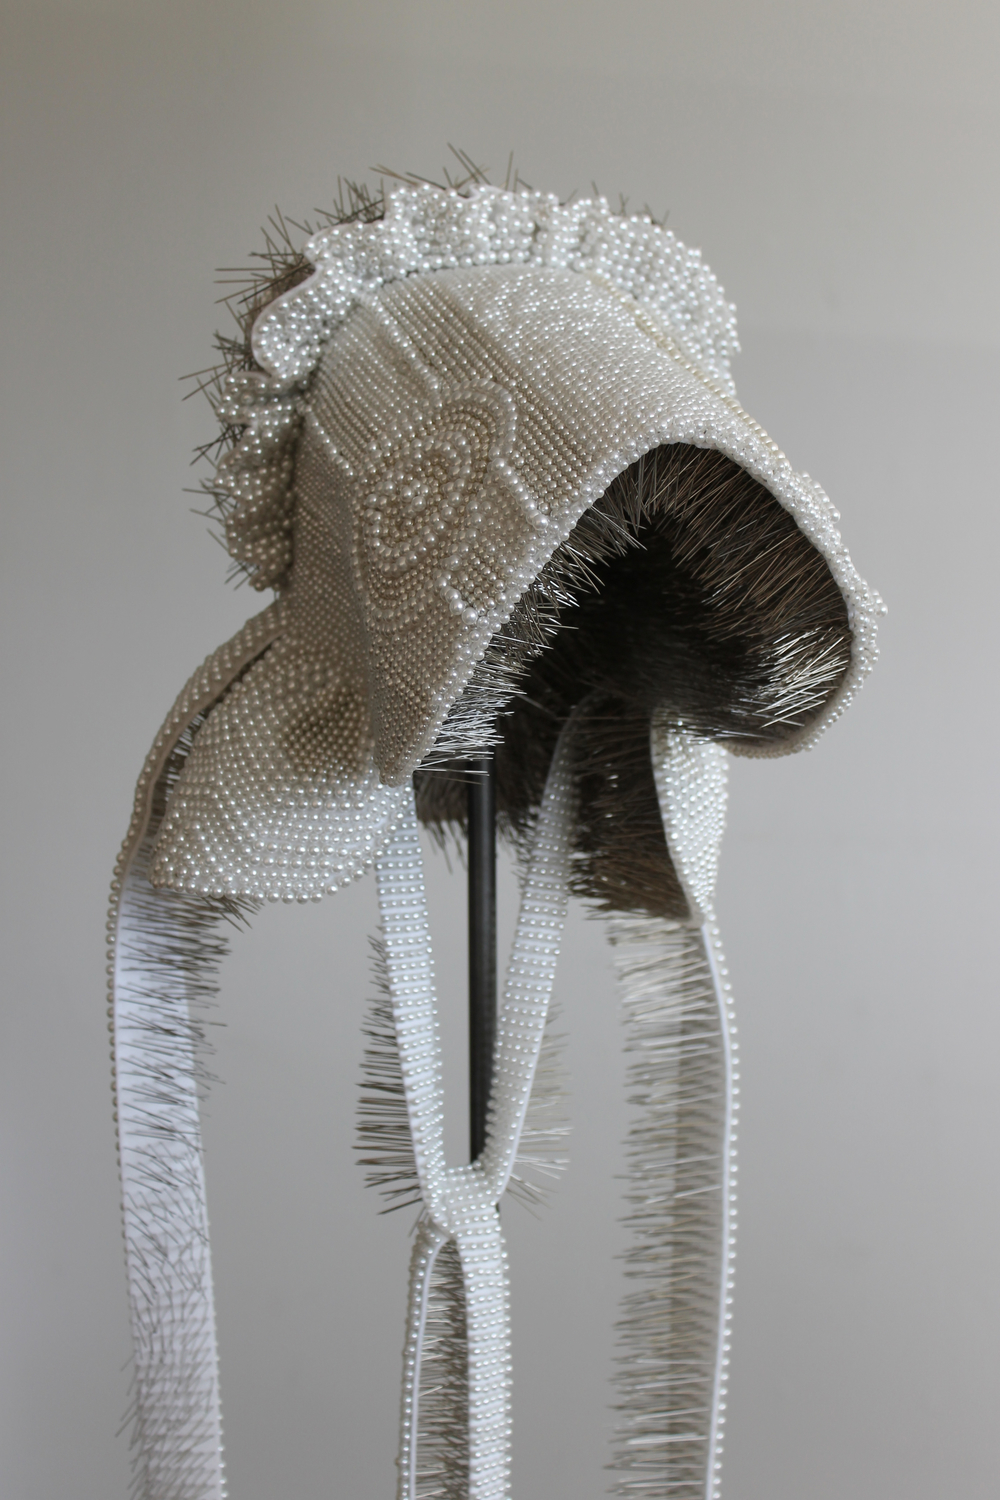 "Seer Bonnet XVII (Martha)  22,921 pearl corsage pins, fabric, steel, wood, 64.5"" x 13"" x 16"", 2011"